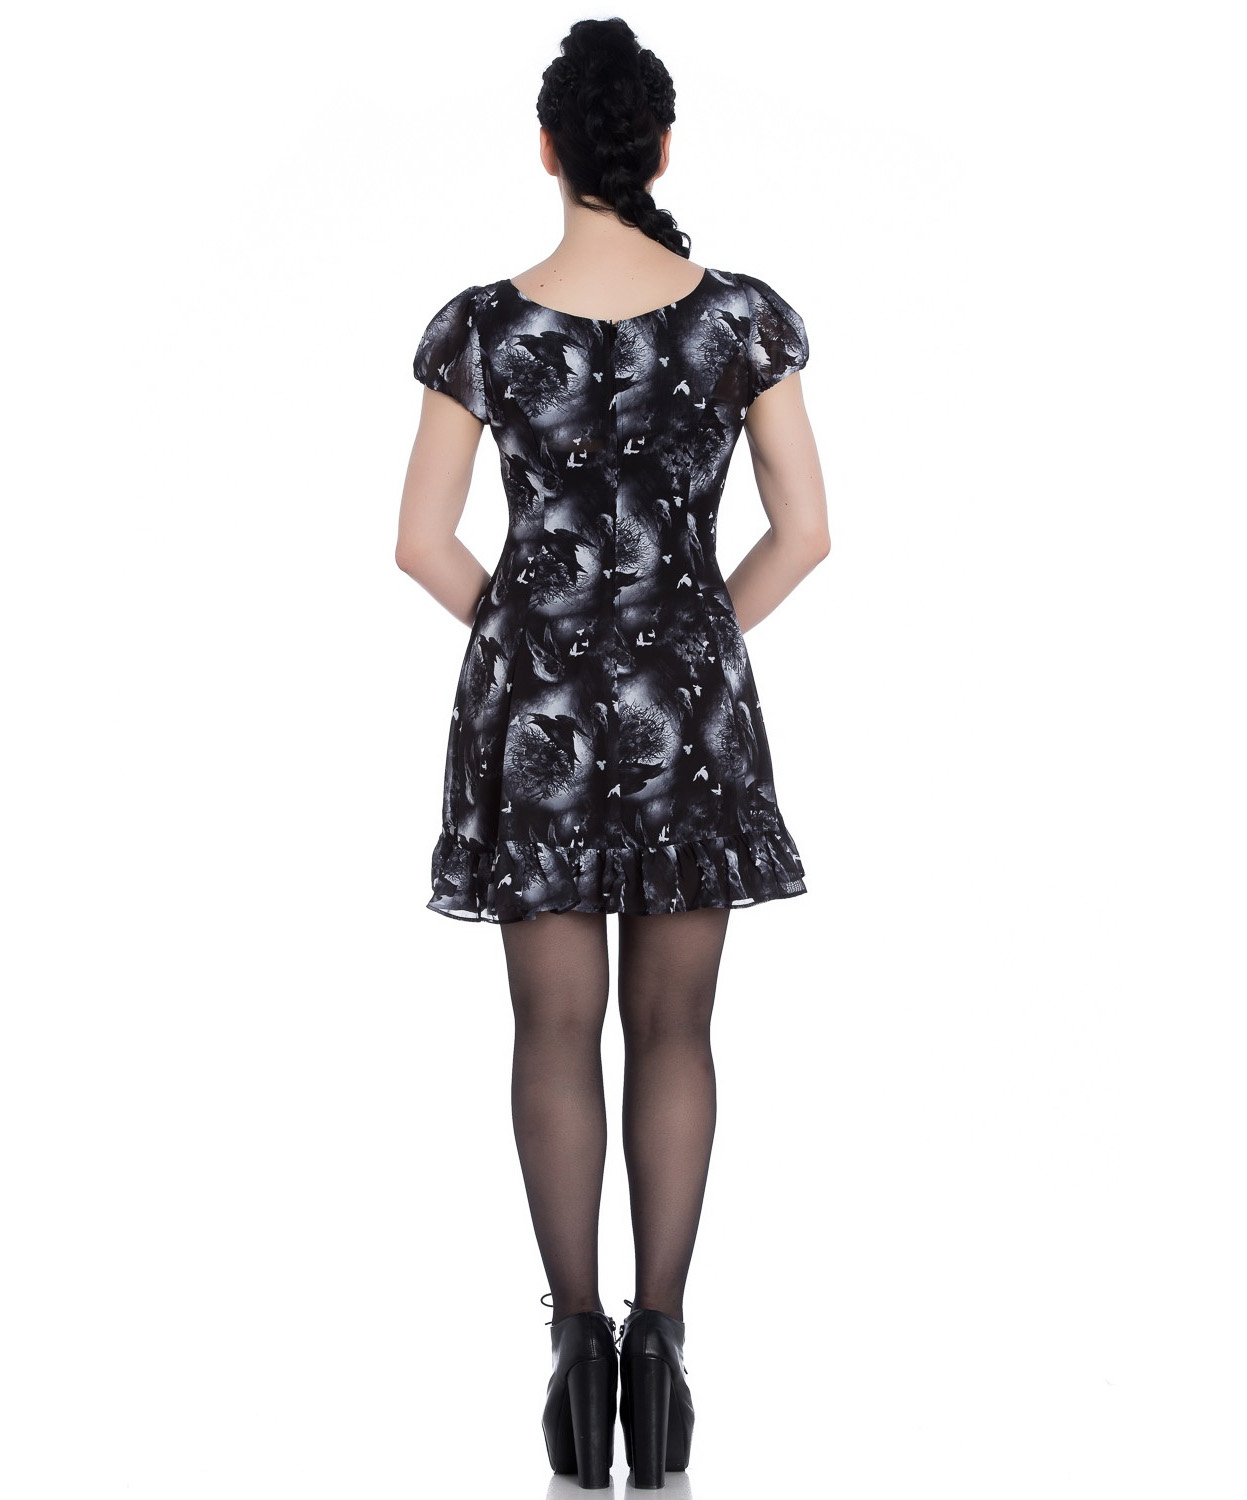 Hell-Bunny-Alchemy-Gothic-Black-Skater-Mini-Dress-ASH-Crows-Skulls-All-Sizes thumbnail 29